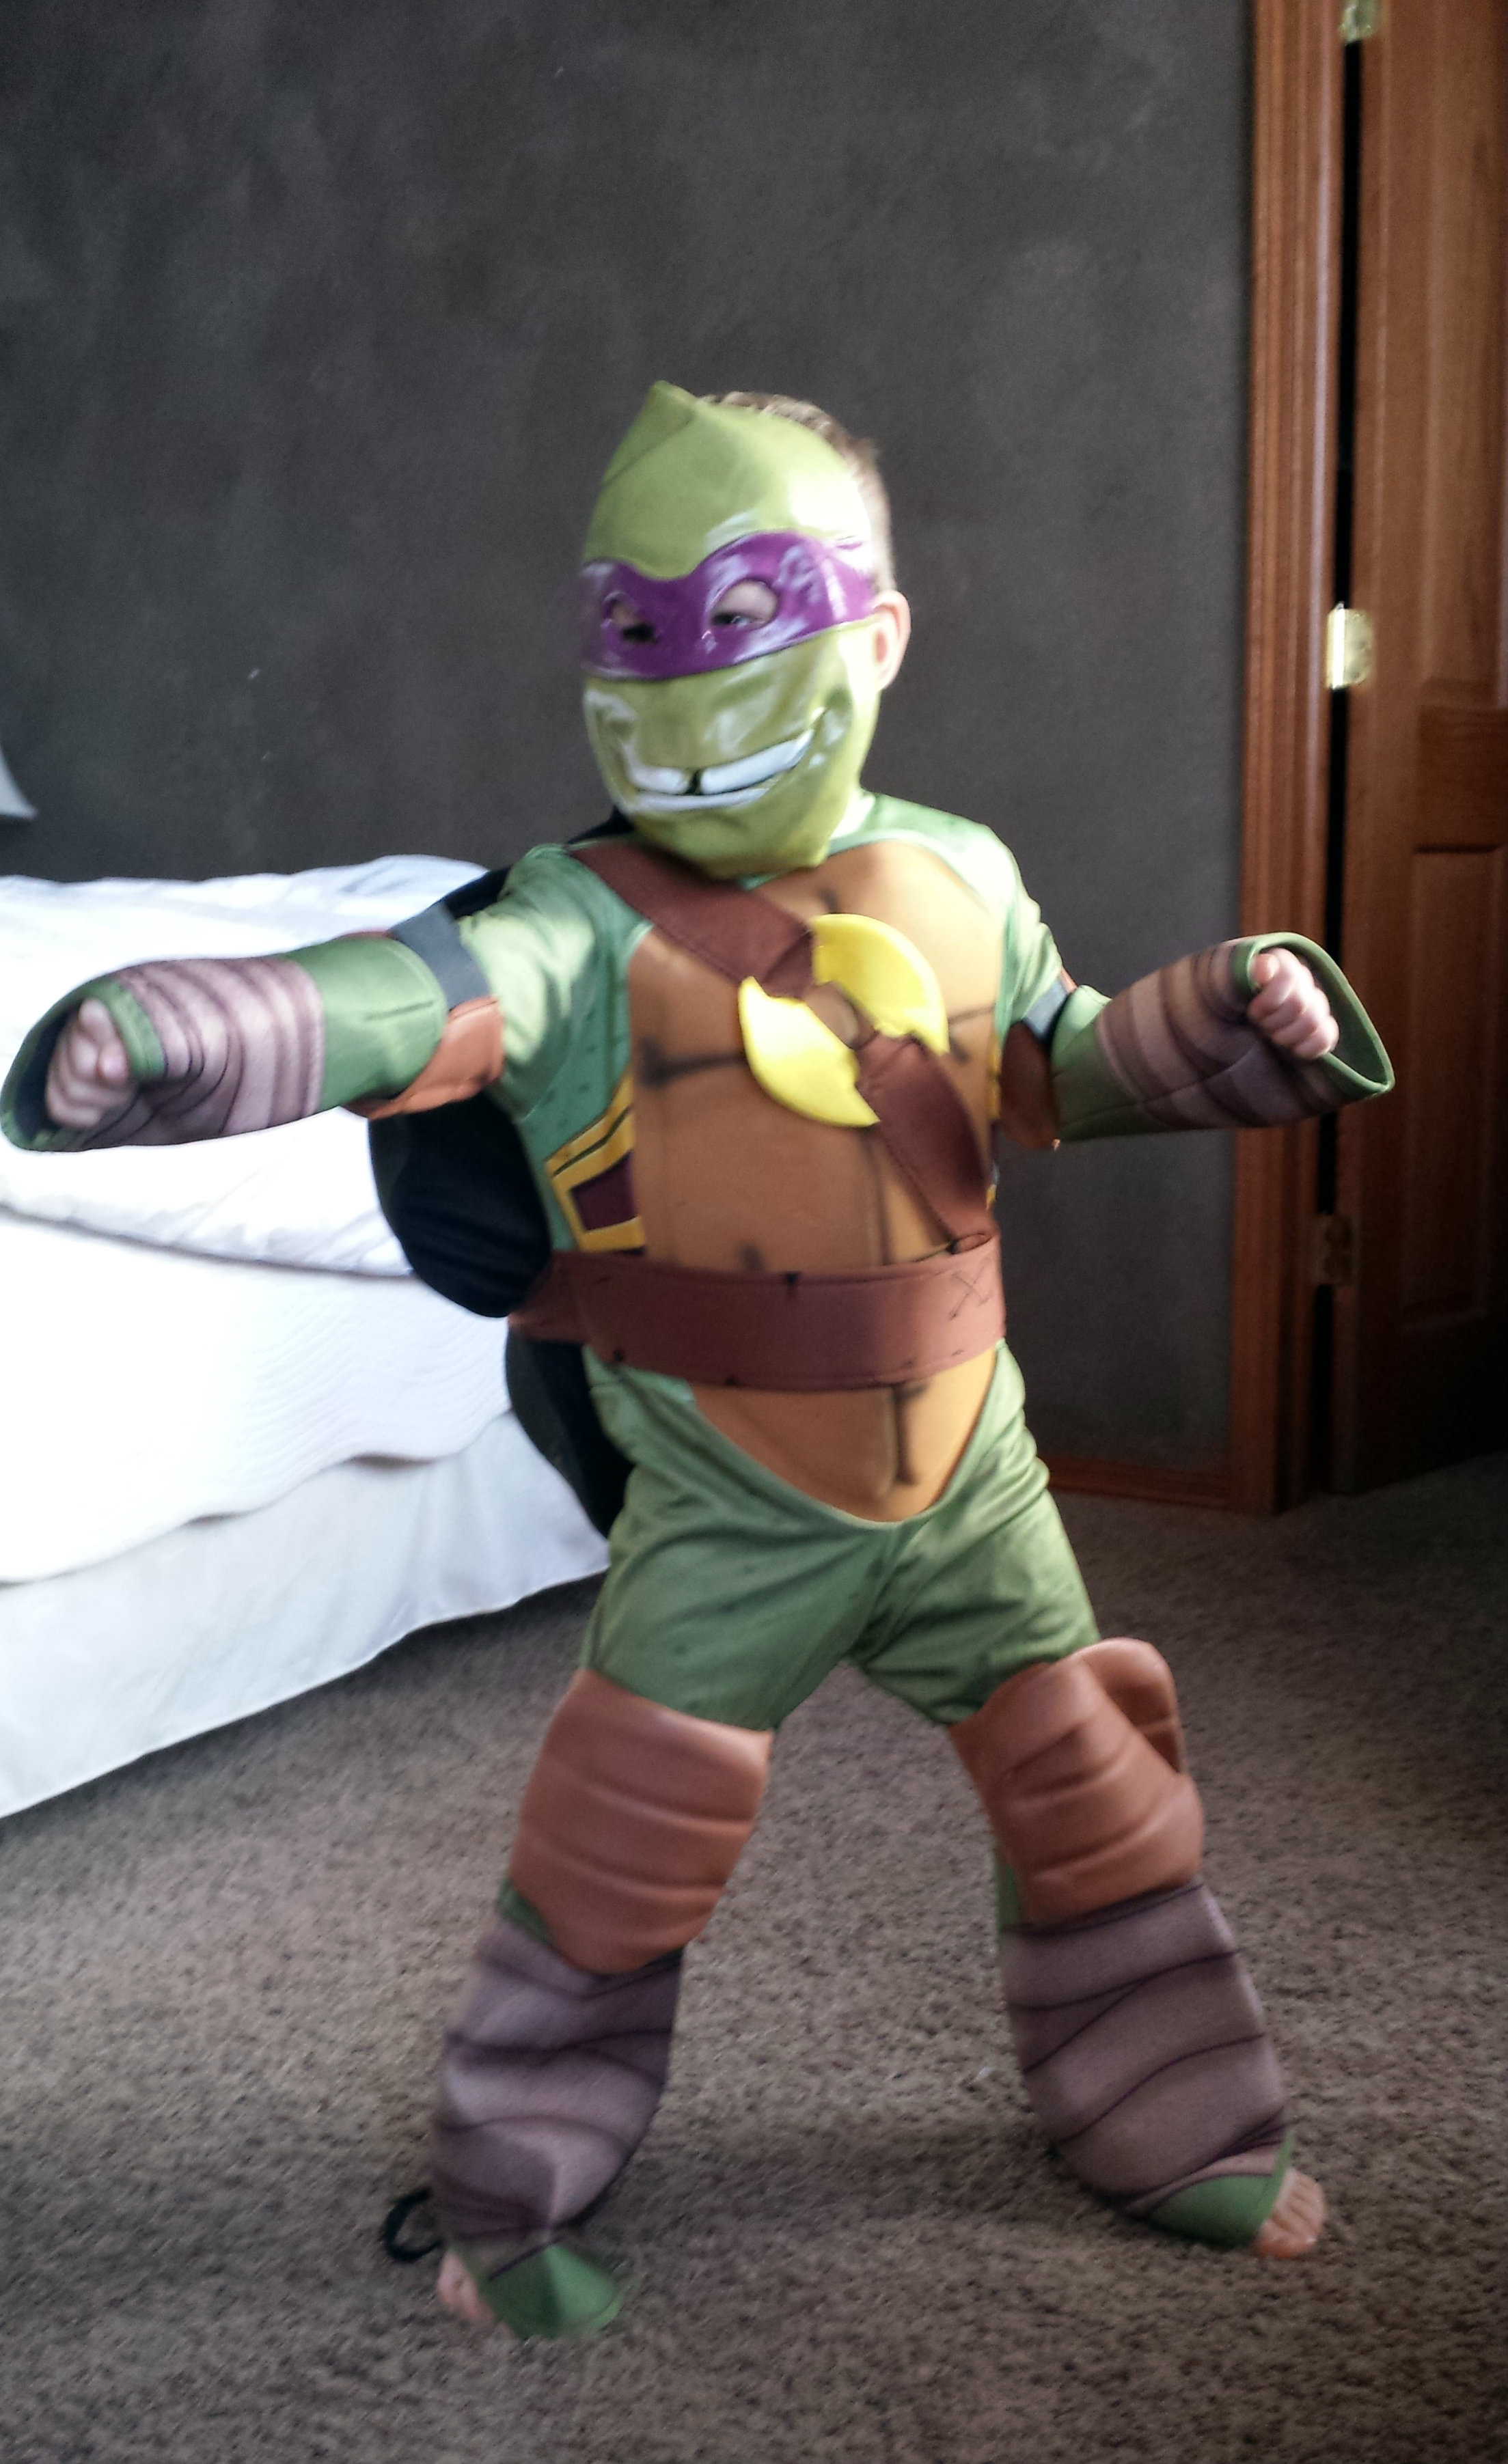 Anytime Costumes Teenage Mutant Ninja Turtles Costume